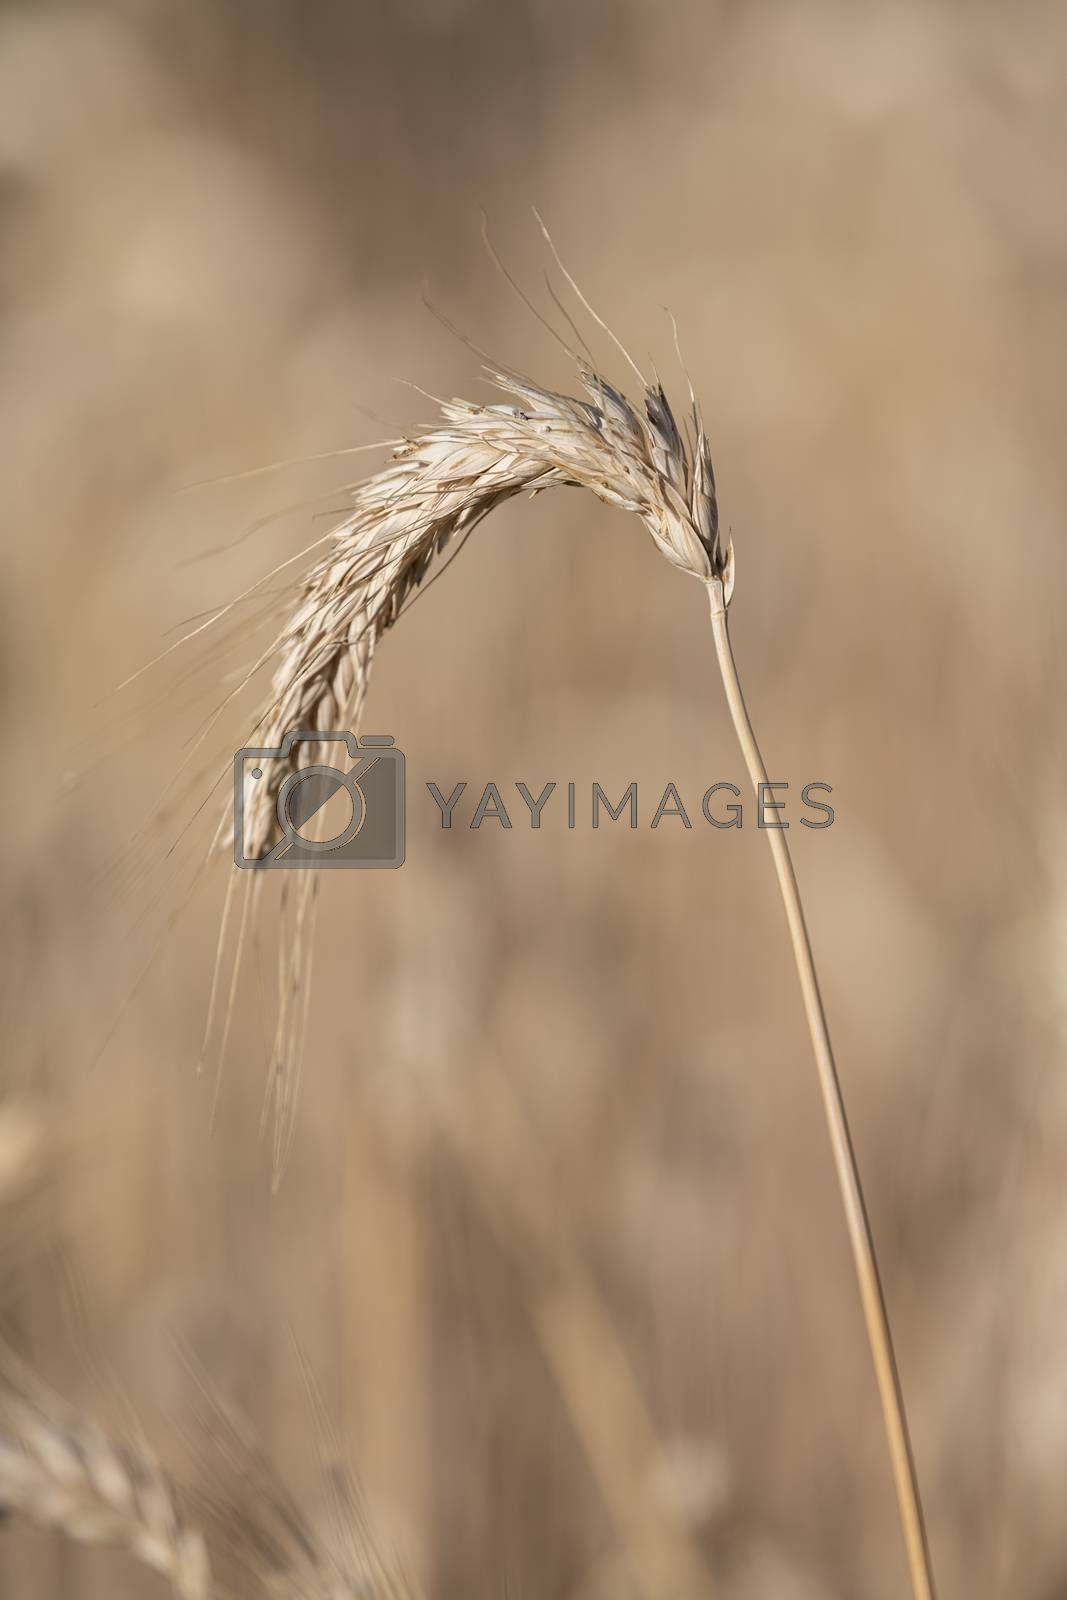 Royalty free image of Detail of a single stalk corn  by Tofotografie